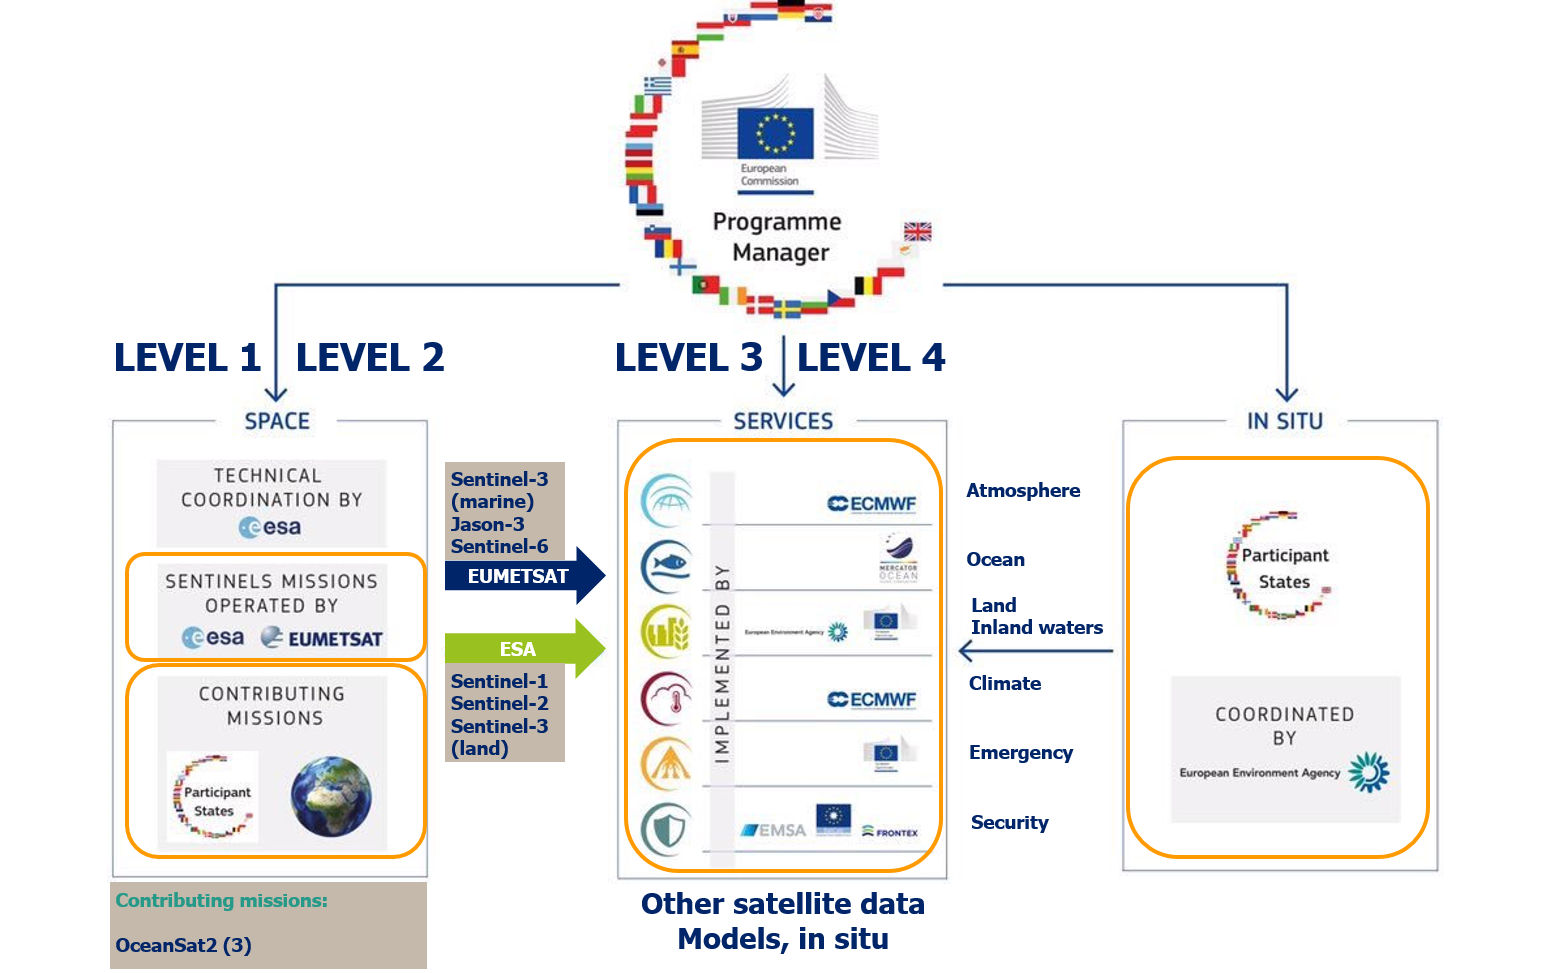 Schematic showing the major parts of the Copernicus programme, highlighting those with a marine relevance